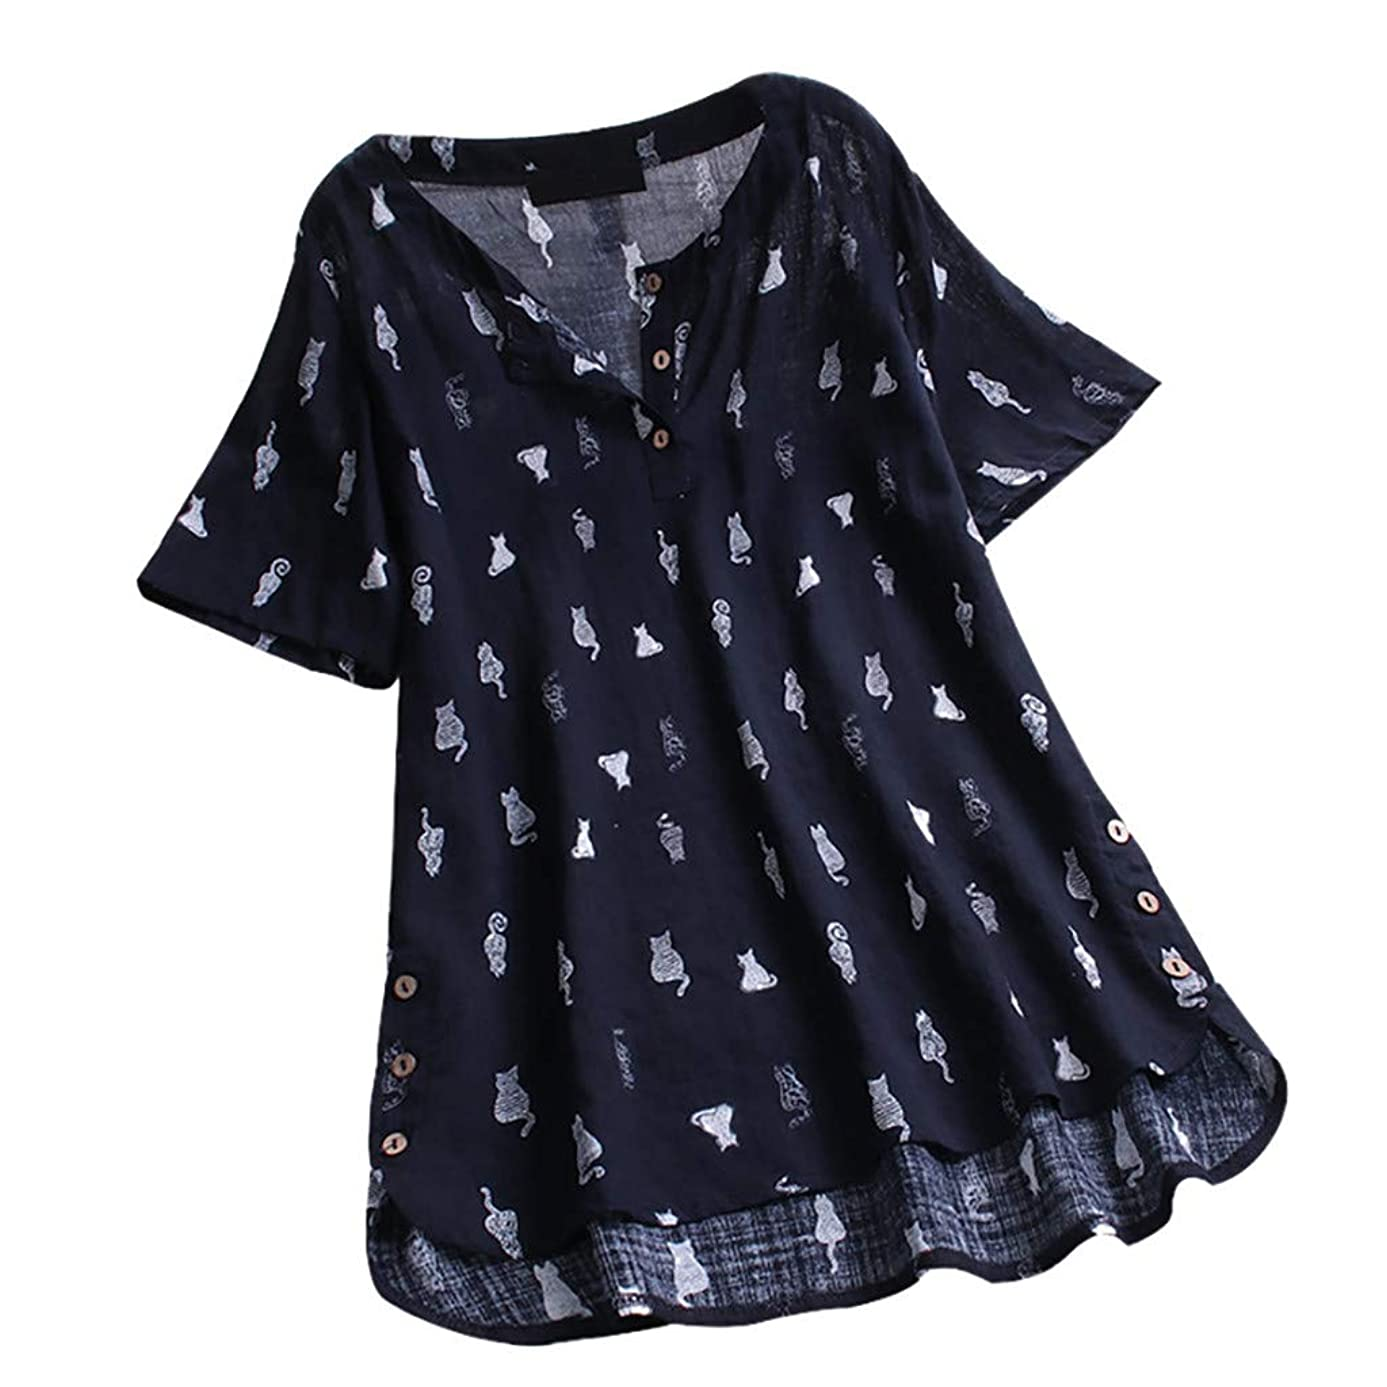 2019 Women's Summer Short Sleeve Loose Blouse V-Neck Casual Cat Print Button Plus Siz Top Casual T-Shirt